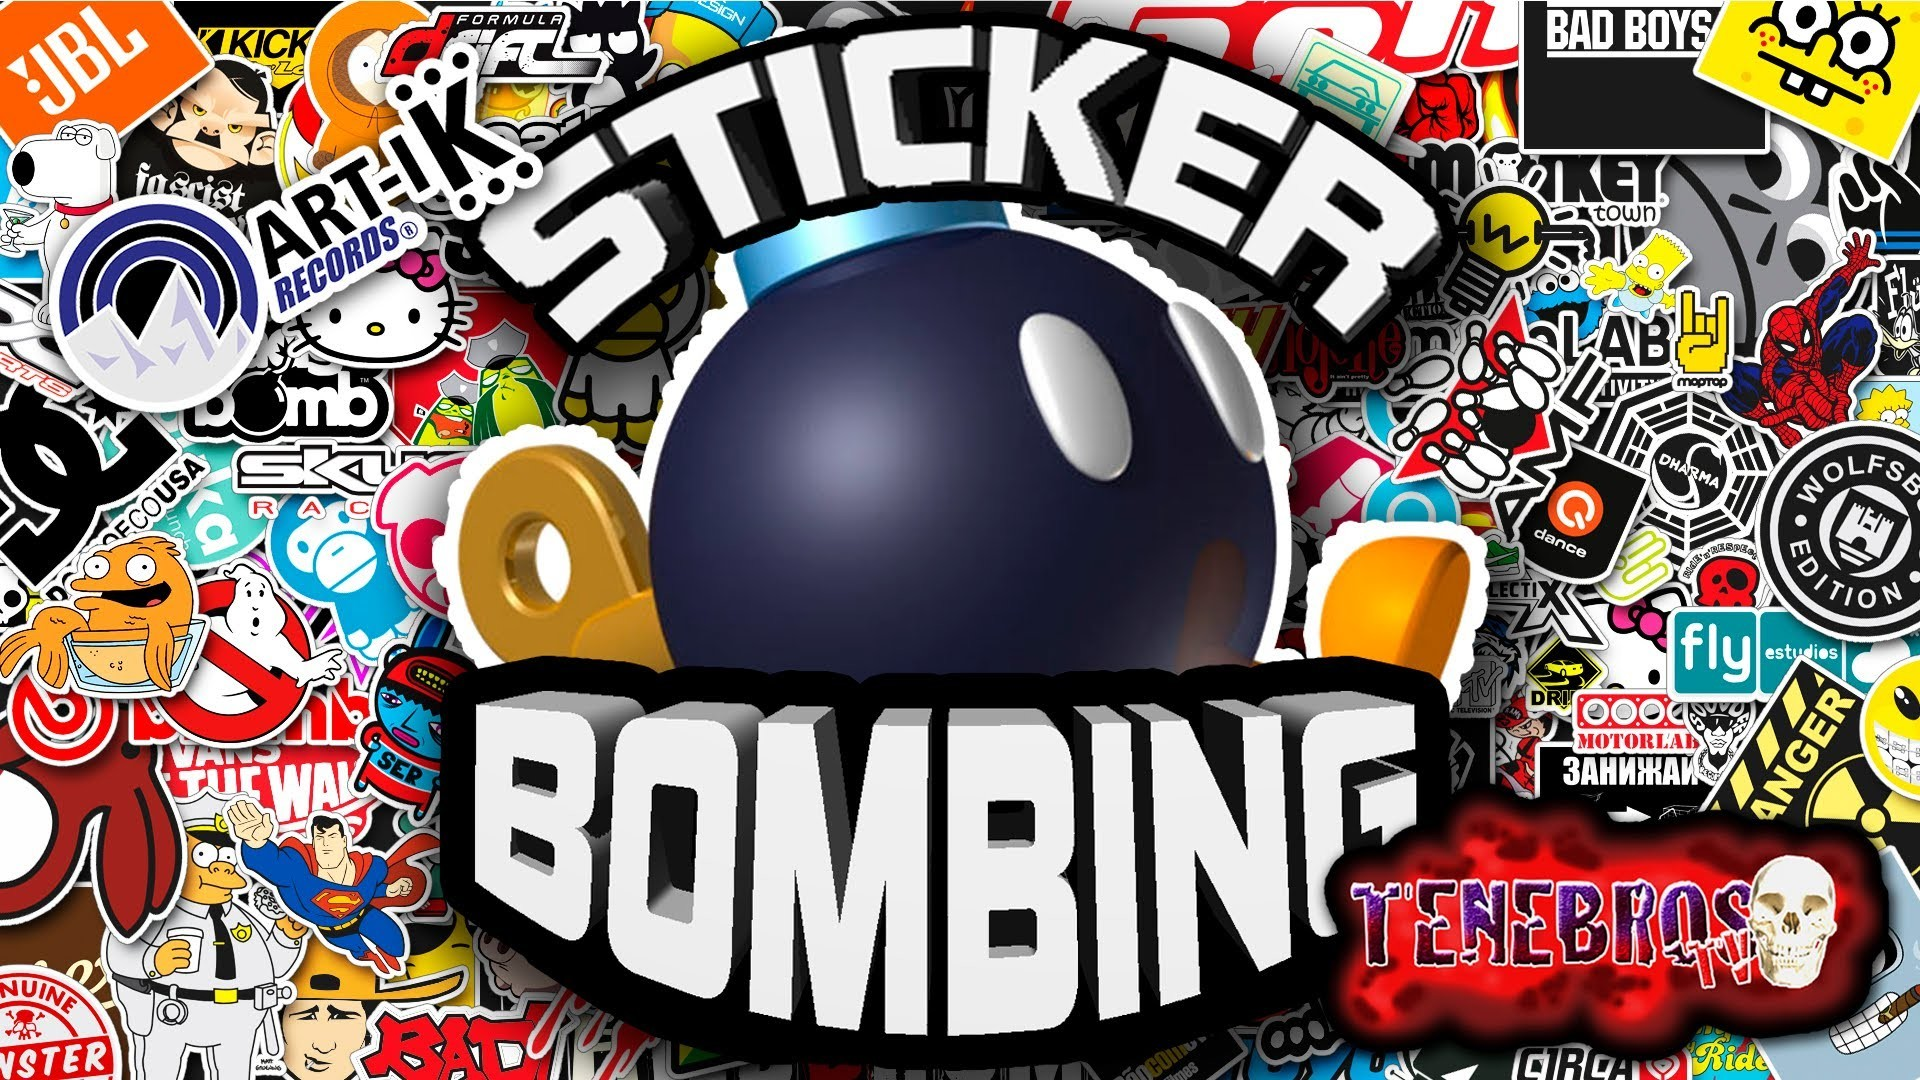 1920x1080 STICKER BOMBING